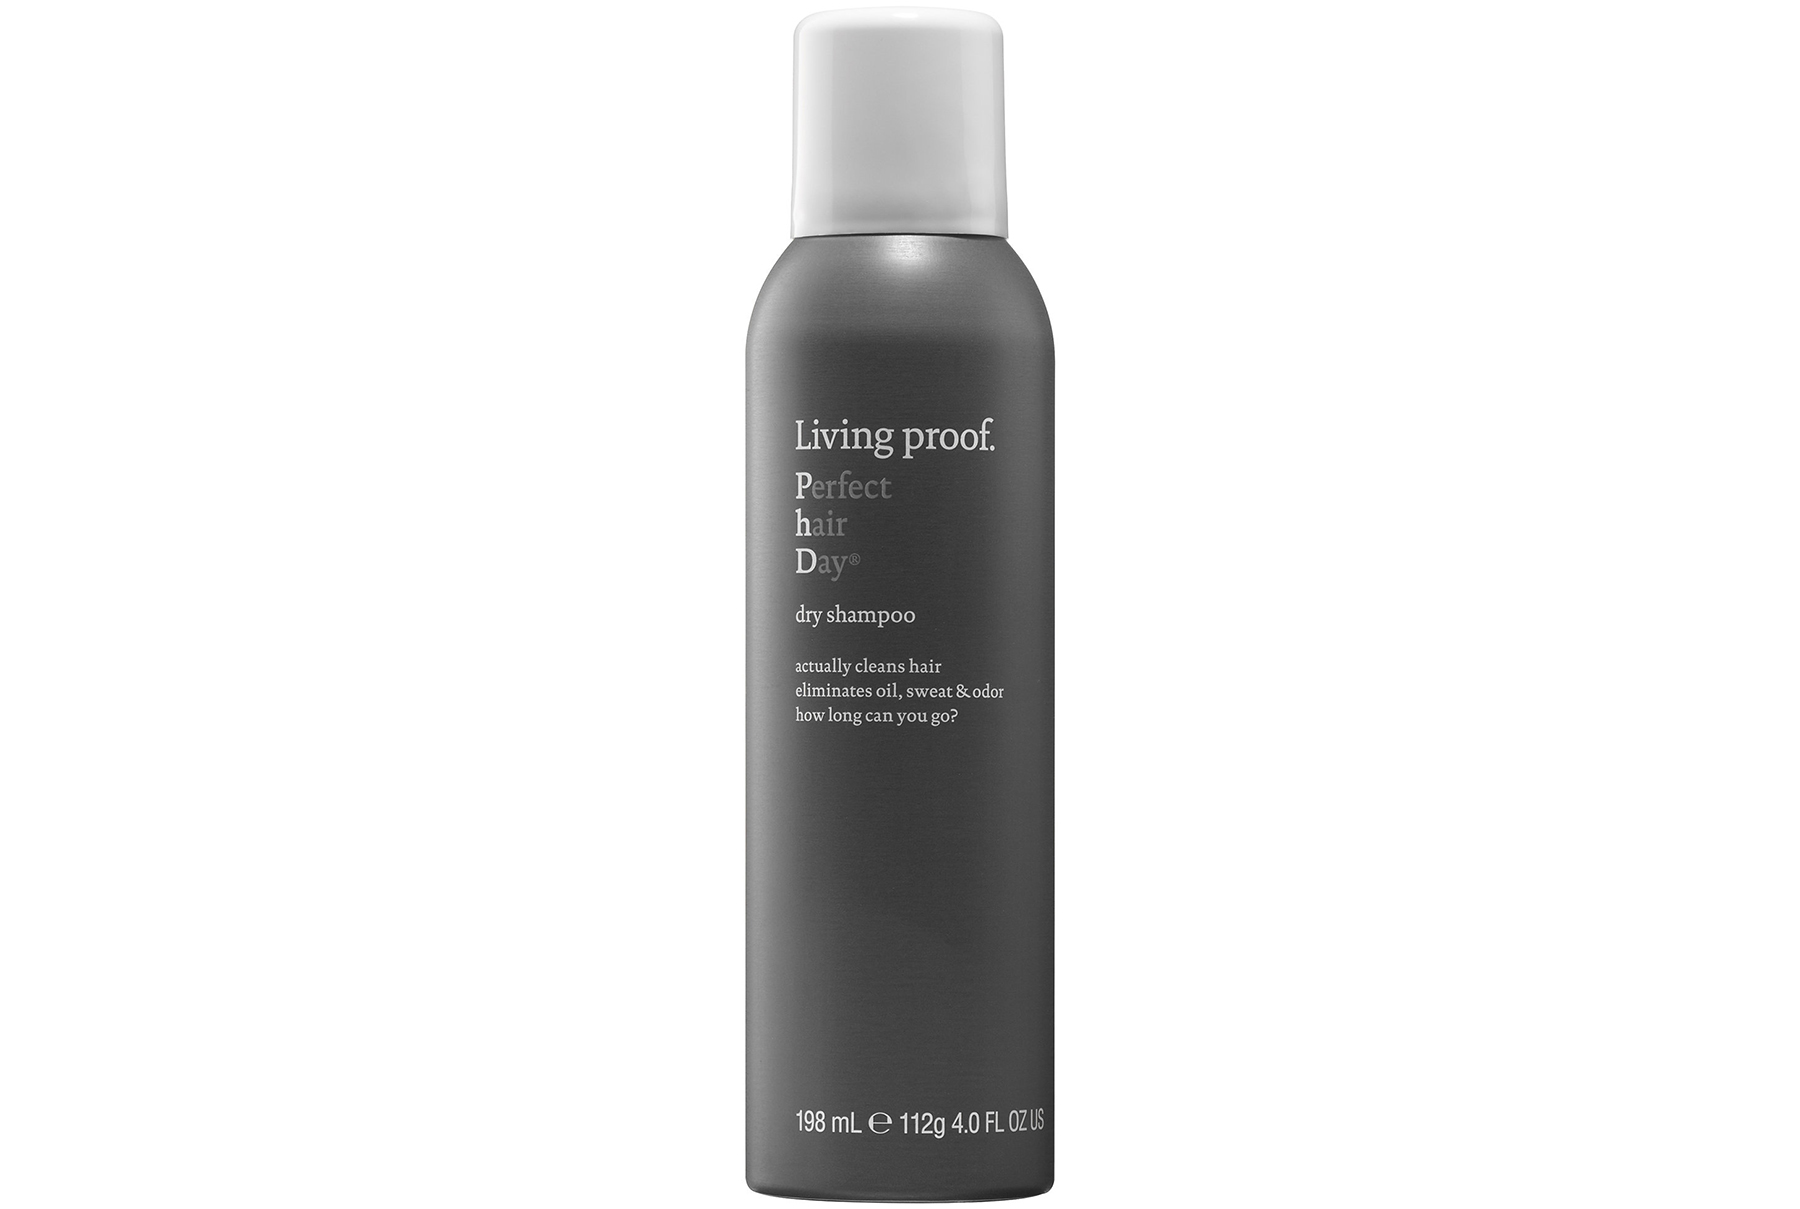 living-proof-perfect-hair-day-dry-shampoo